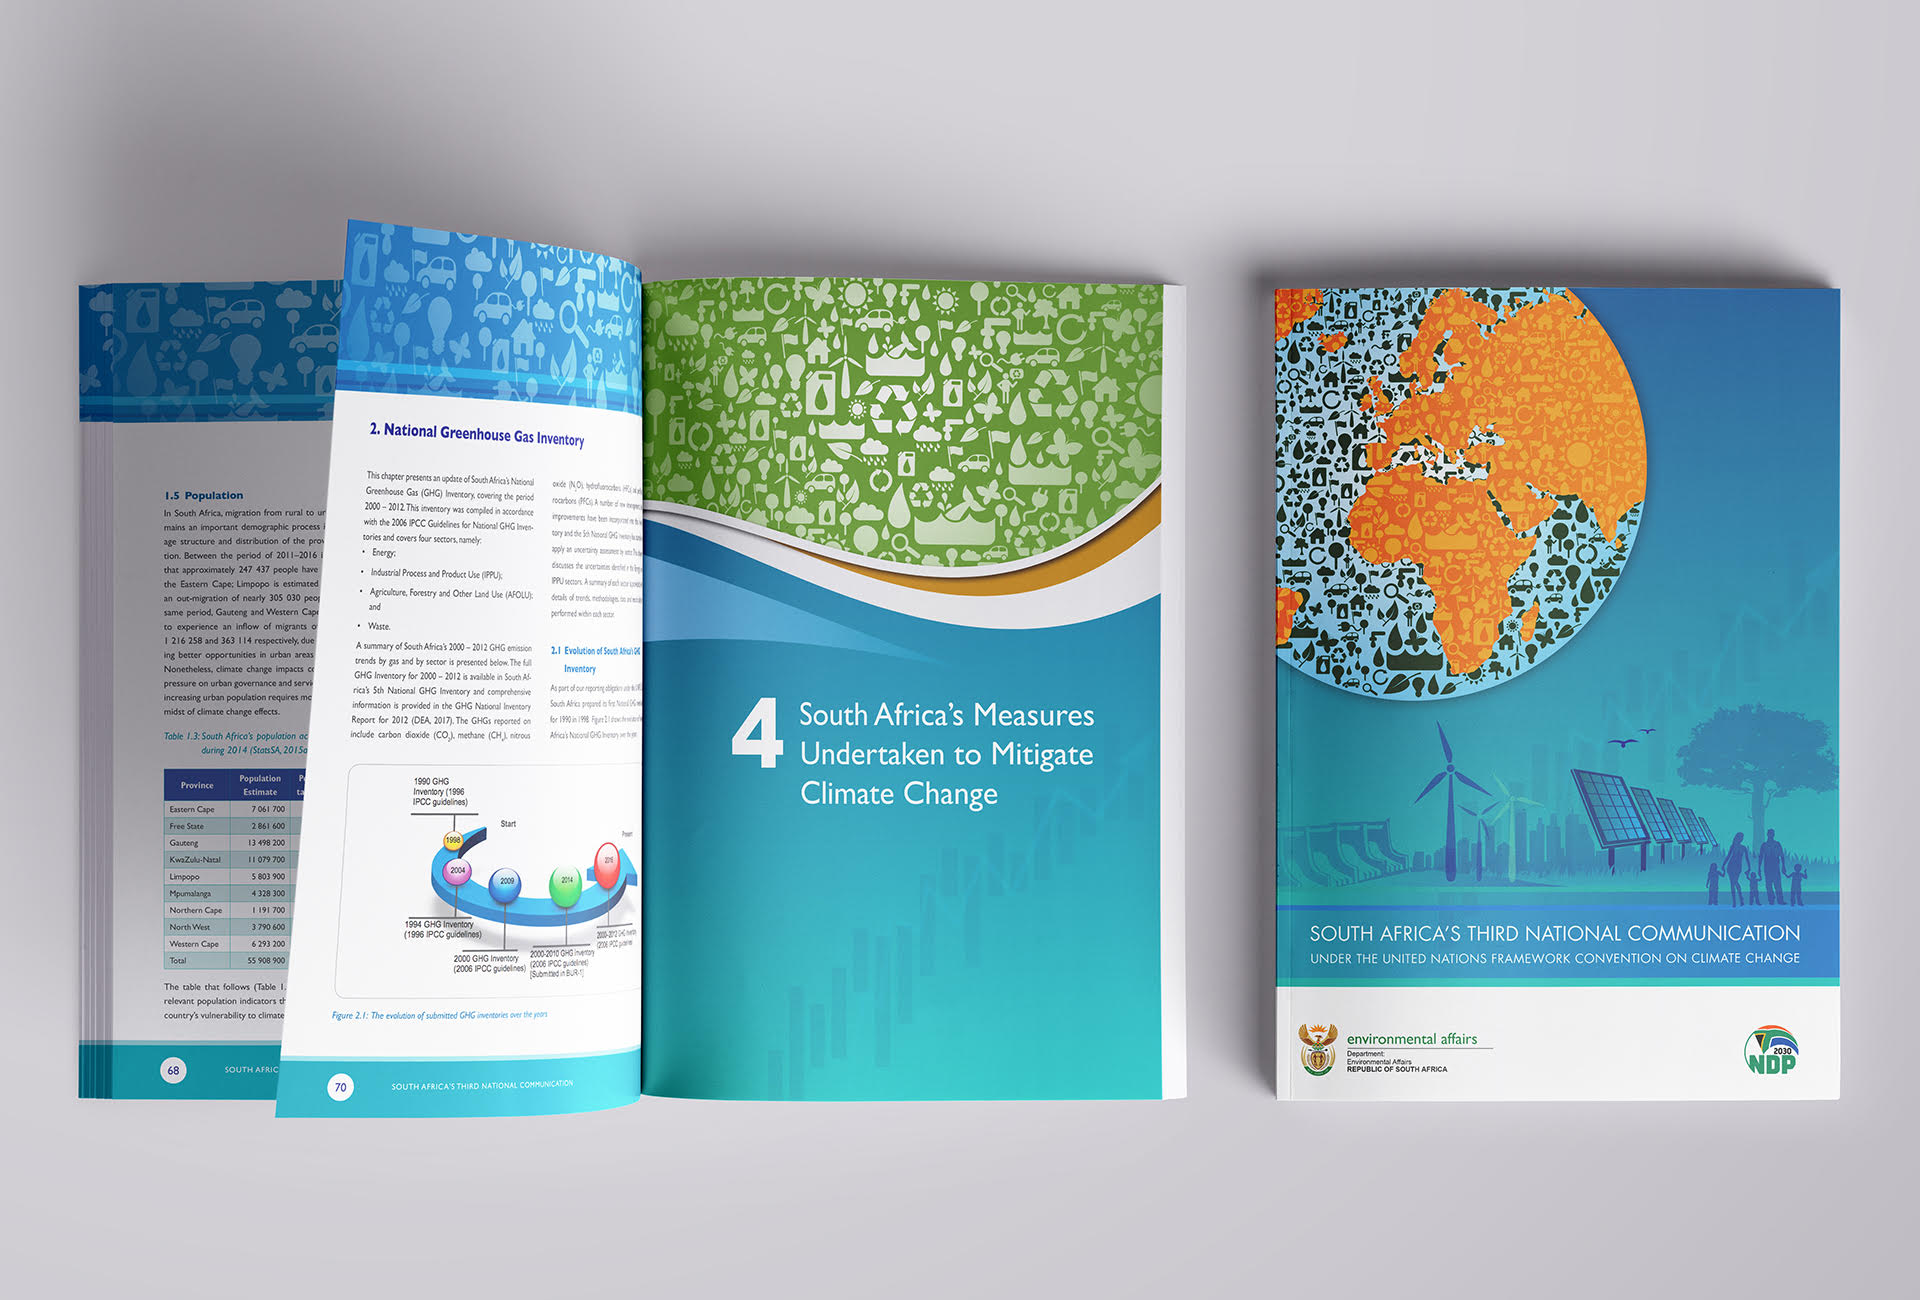 Dep Environmental Affairs SA's 3rd National Communication report